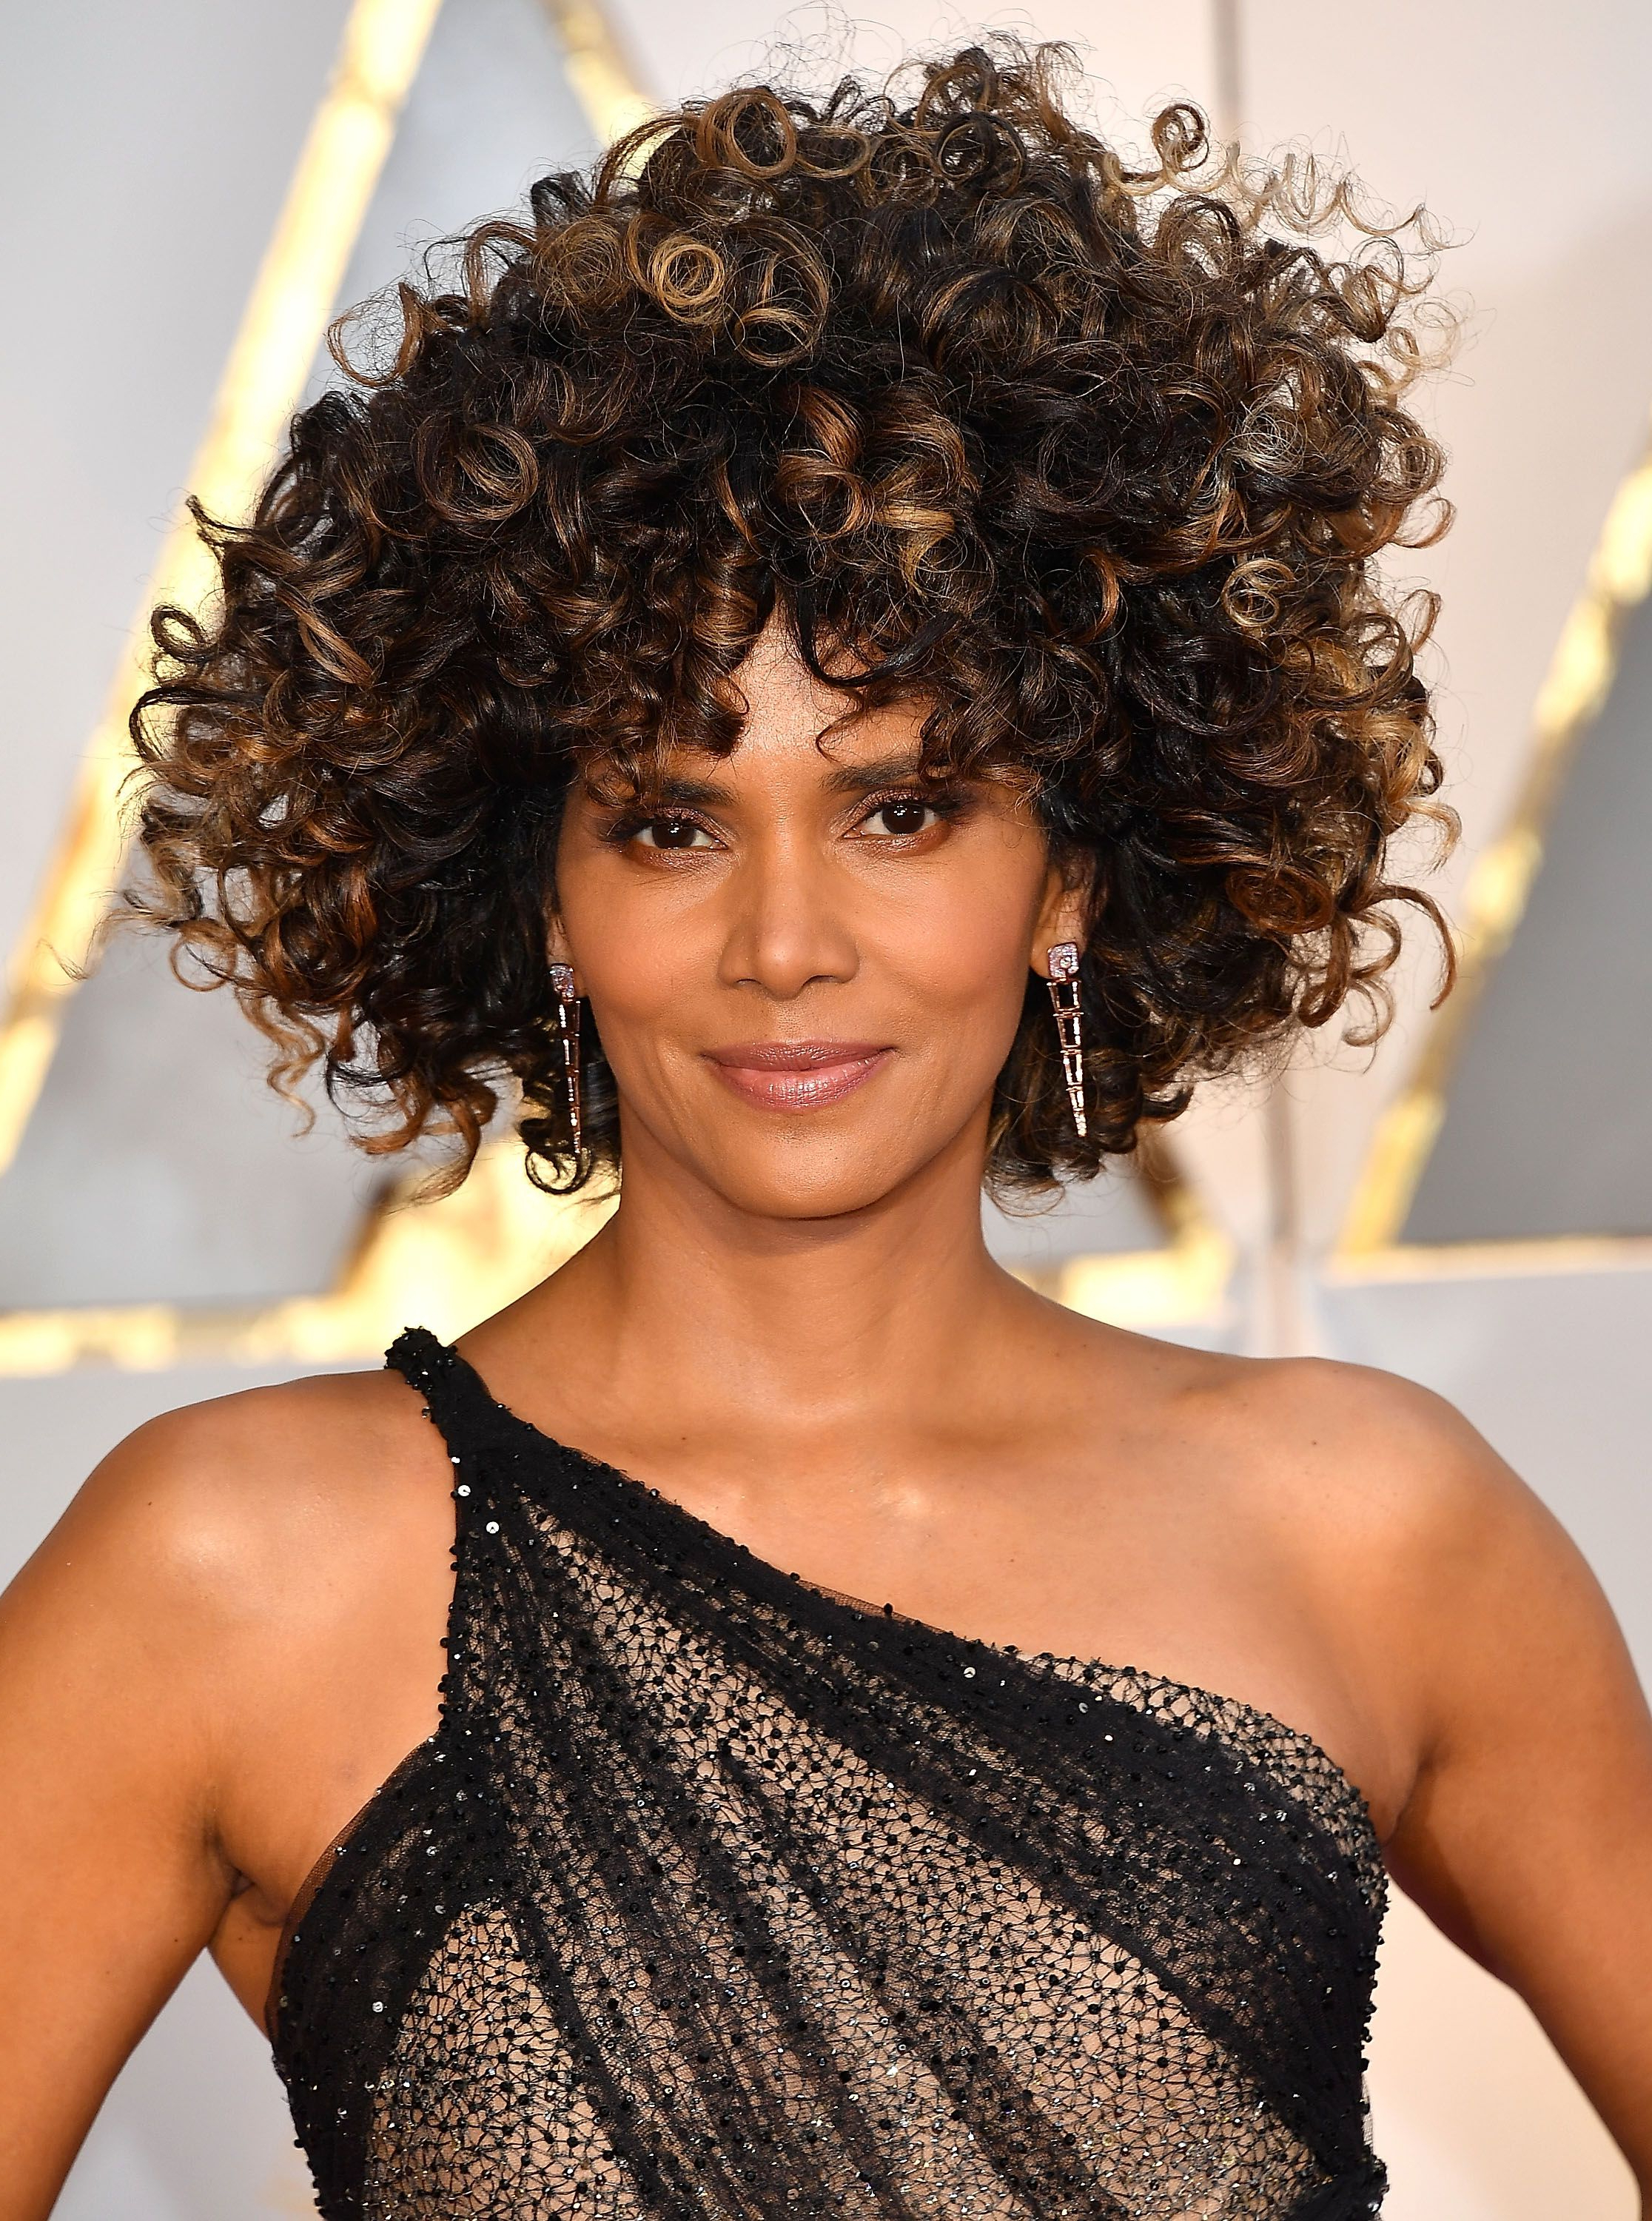 50 Best Hairstyles Of All Time – Top Women's Haircuts In History In Latest Alicia Keys Glamorous Mohawk Hairstyles (View 4 of 20)